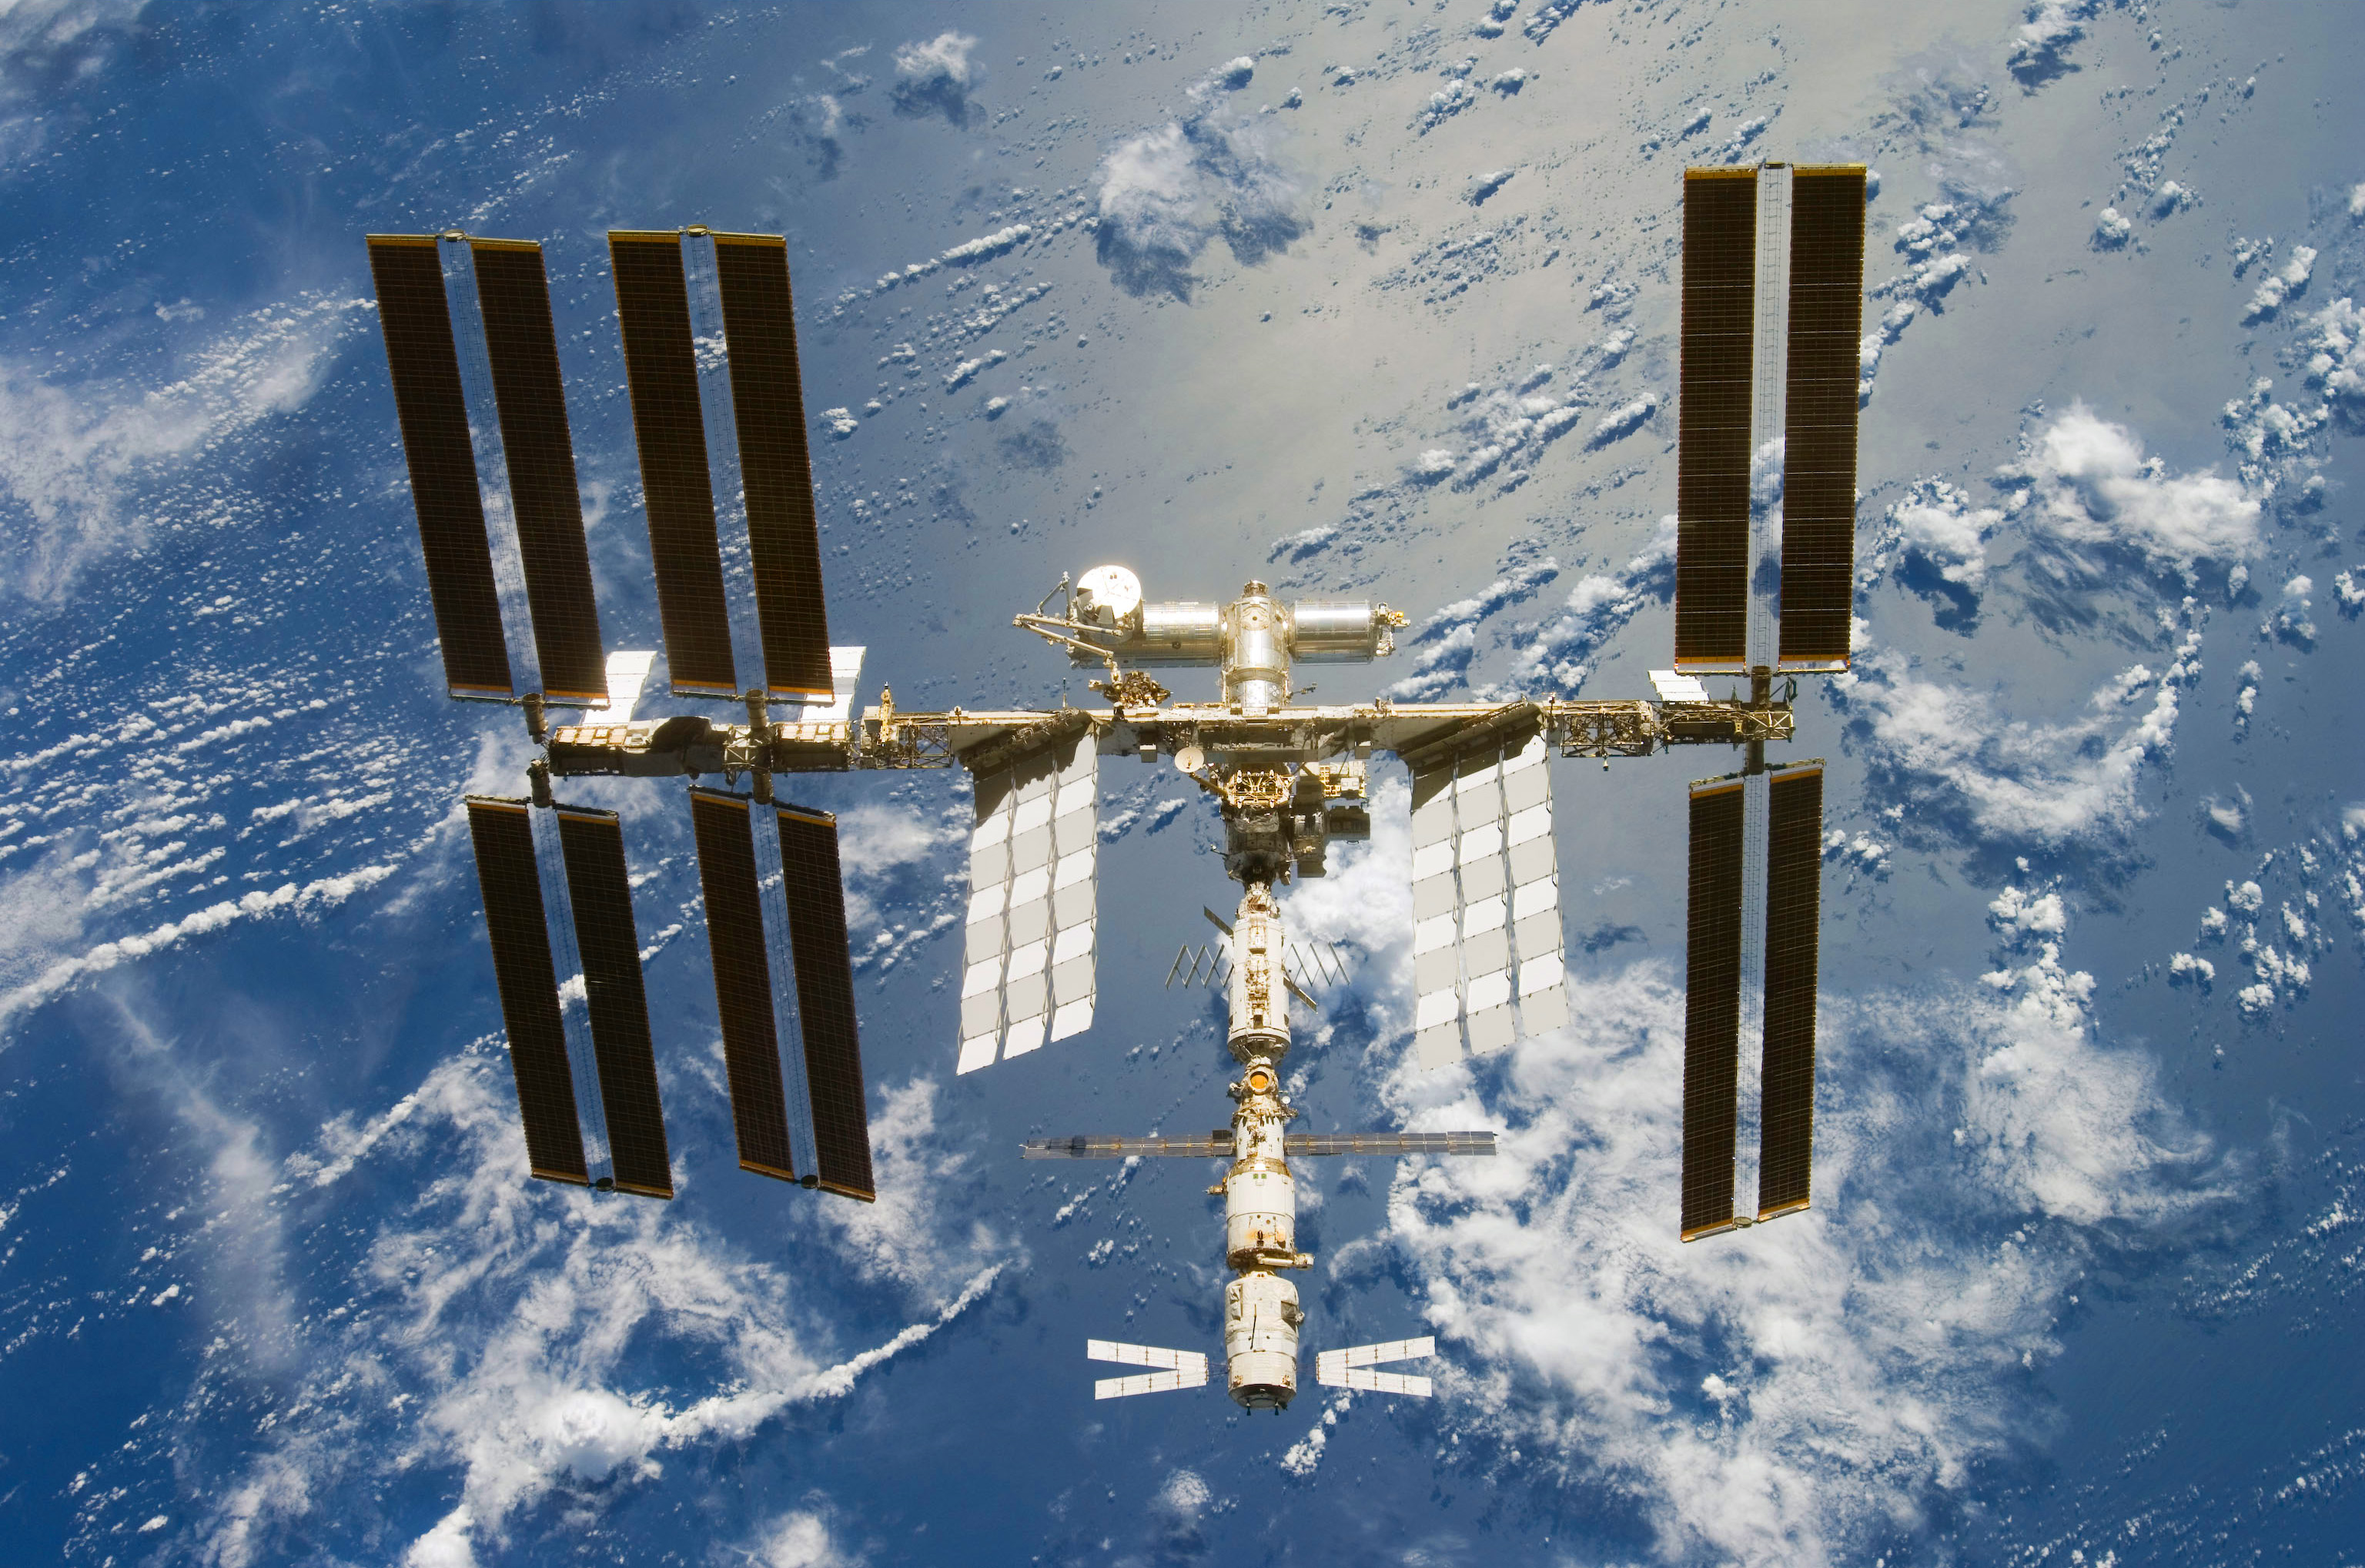 The_International_Space_Station_seen_from_Space_Shuttle_Discovery_after_the_STS-124_mission.jpg